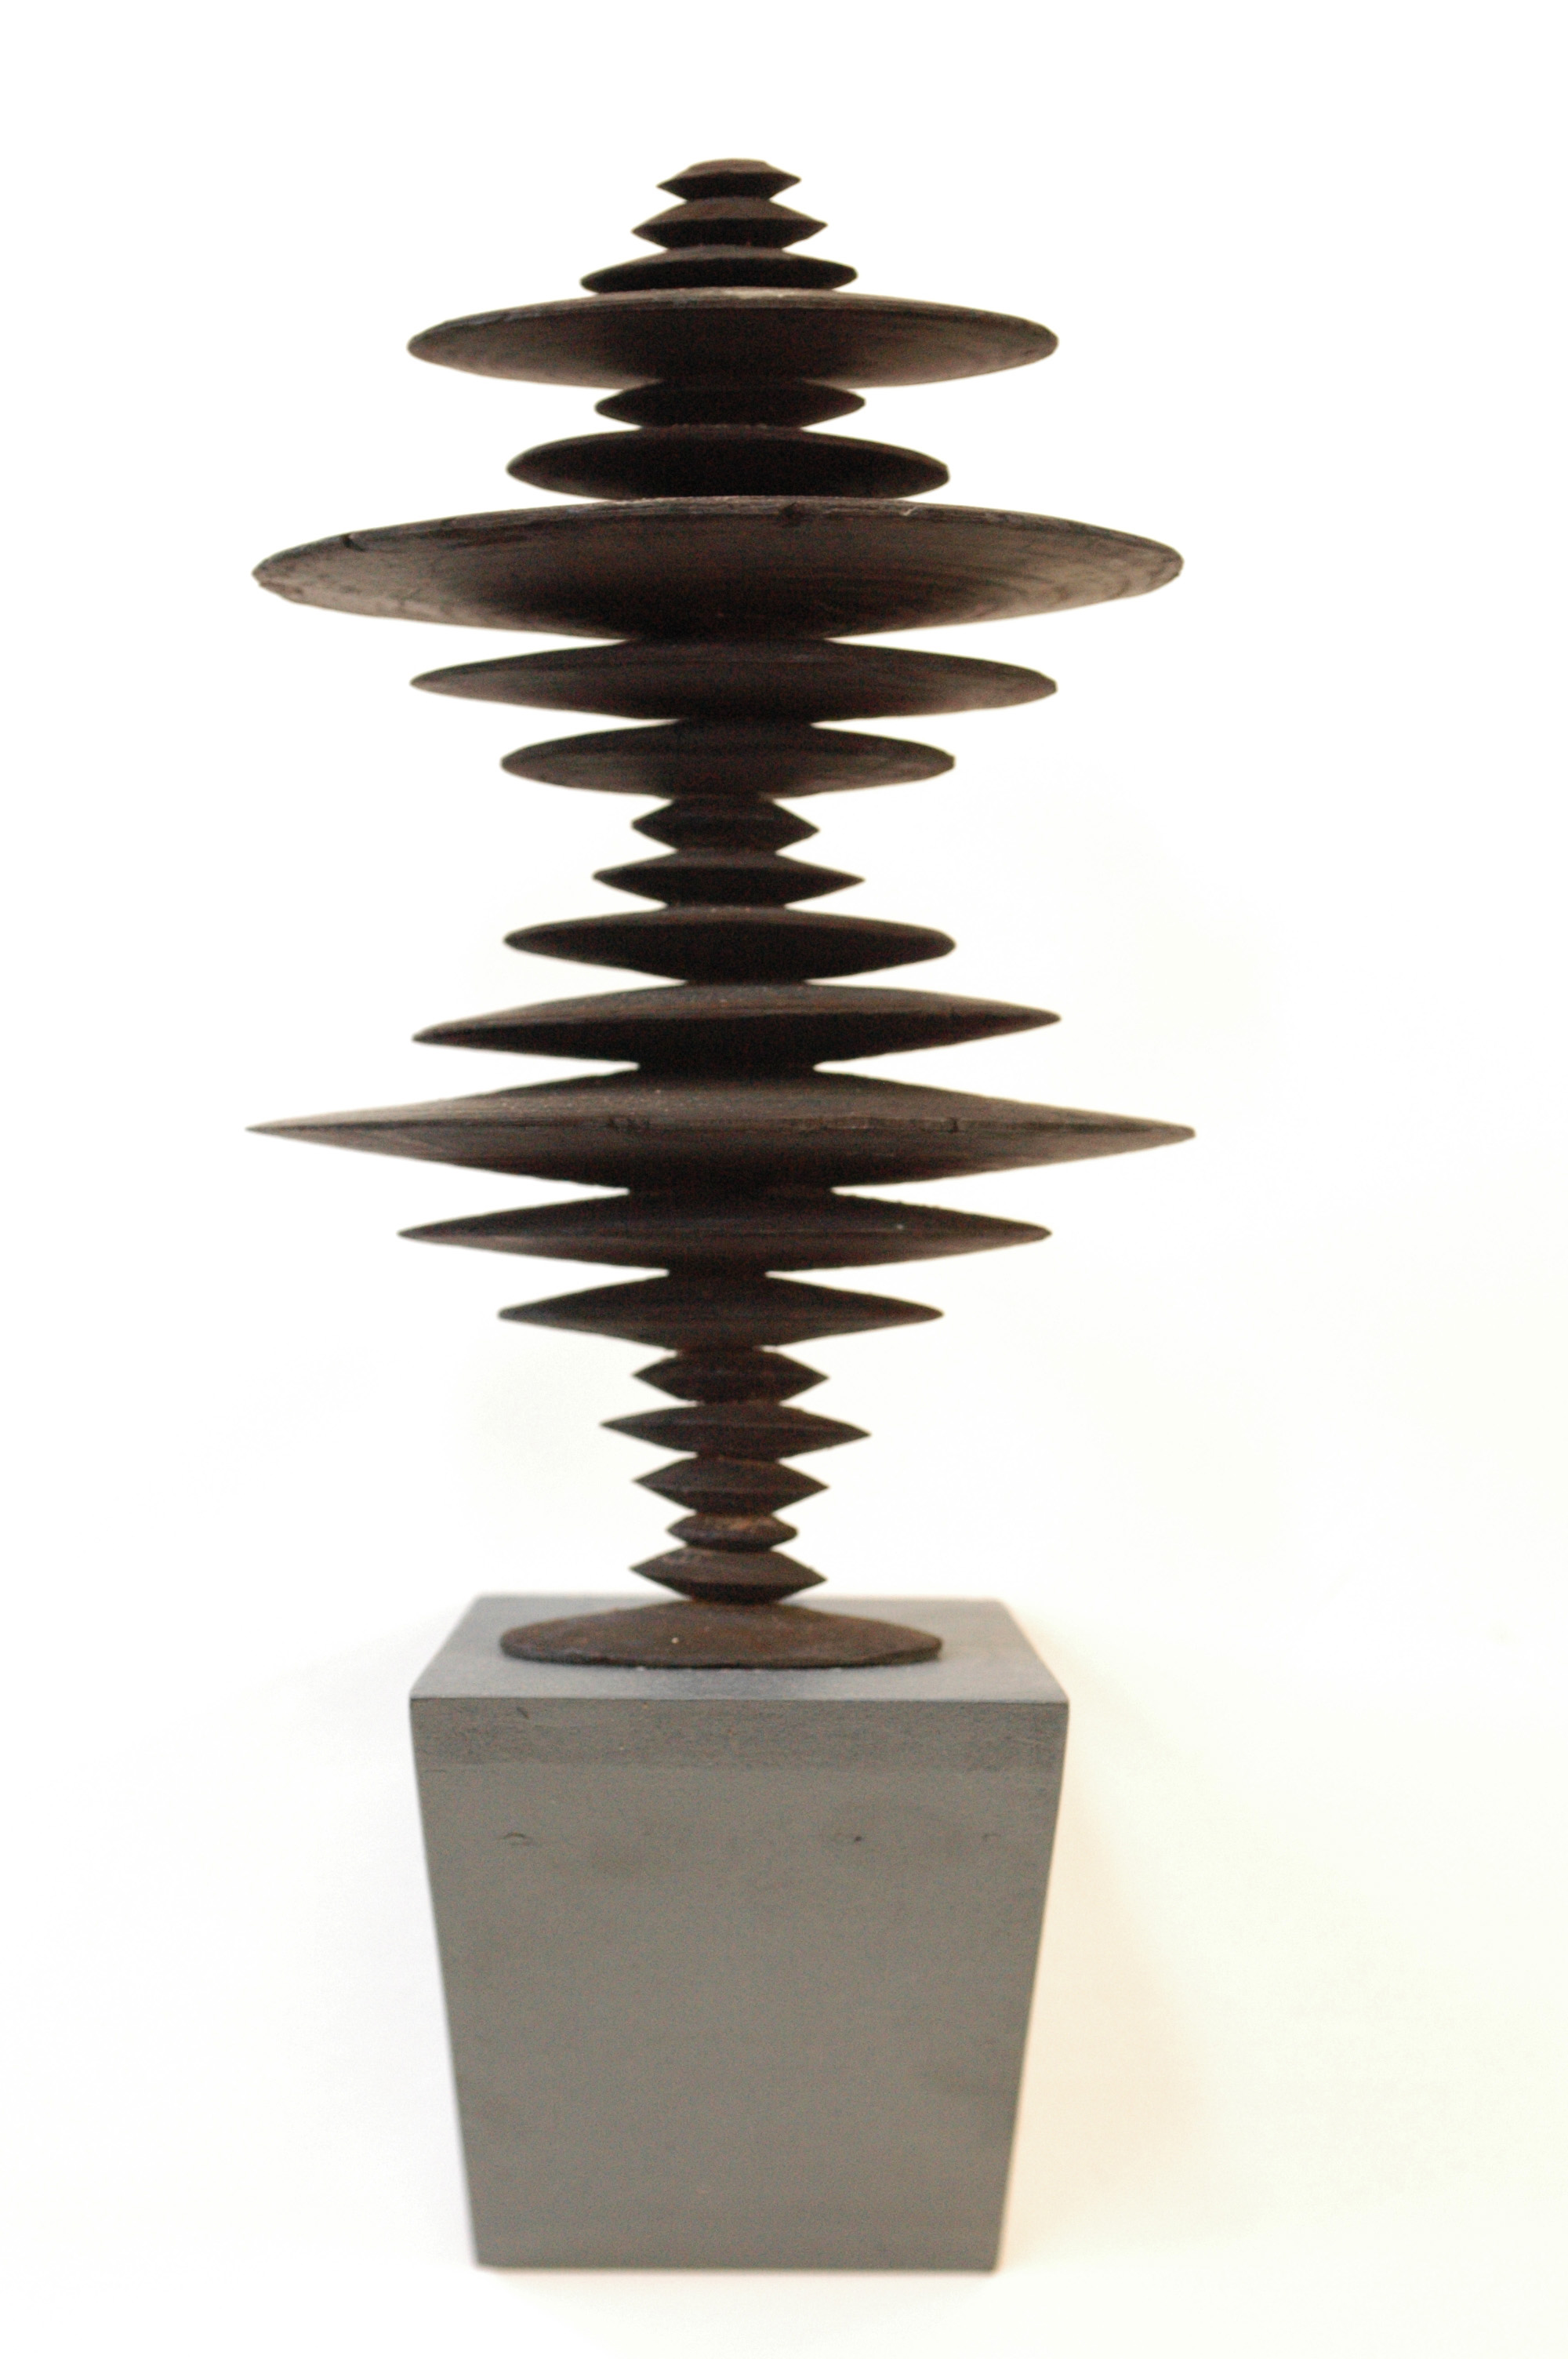 Ewen Coates,  satori time machine #4,  2012, bronze